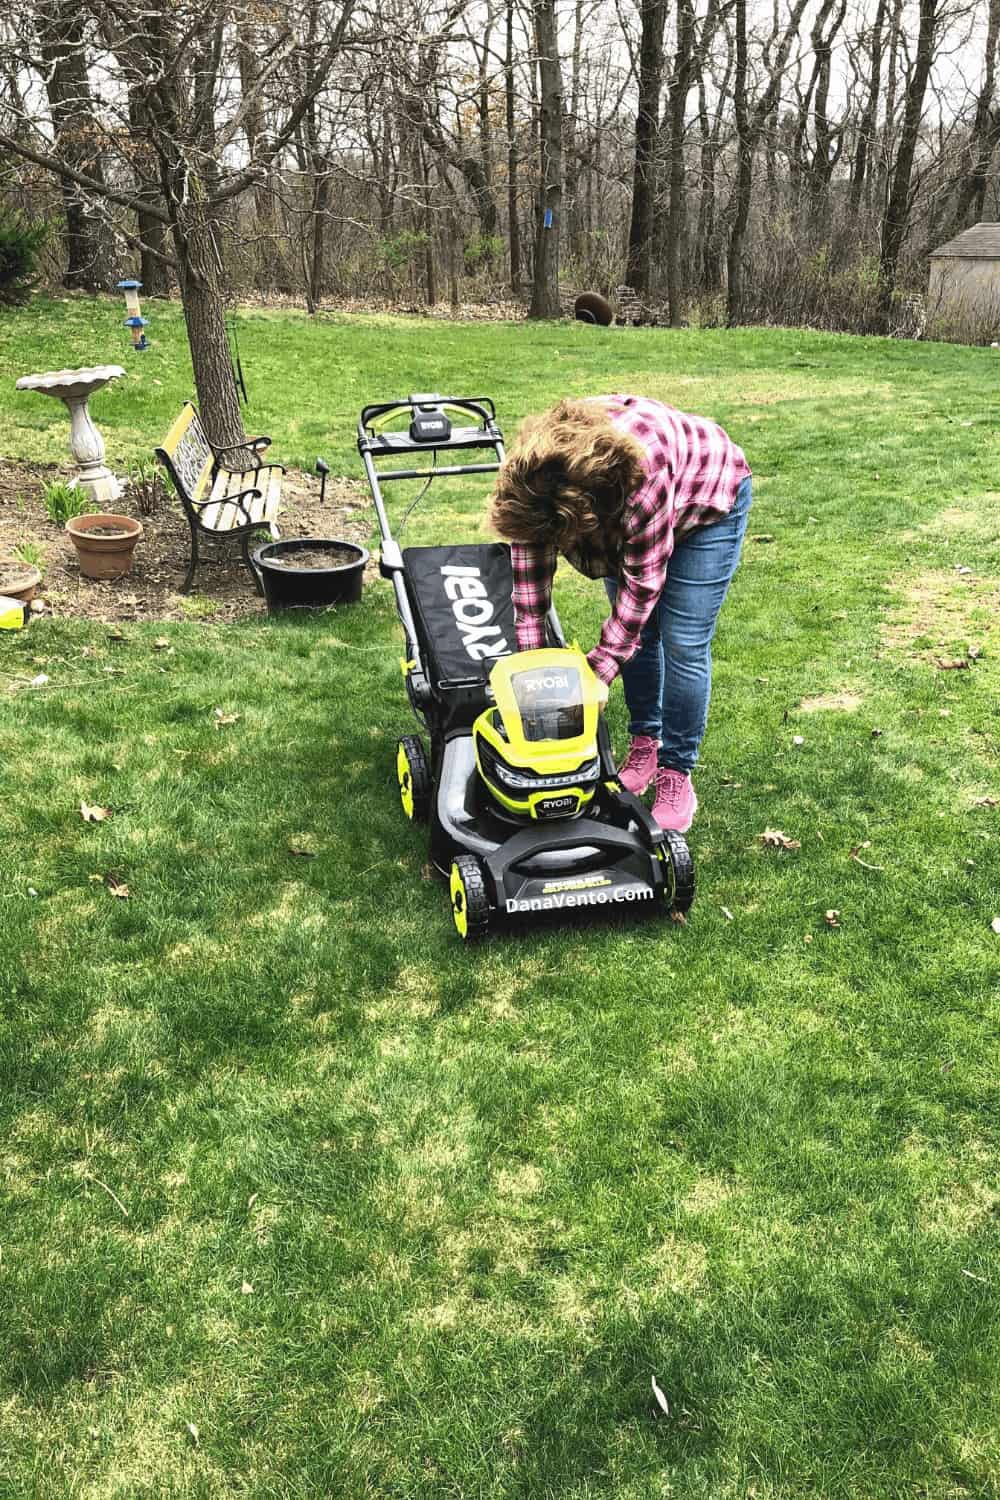 Dana and RYOBI mower battery operated